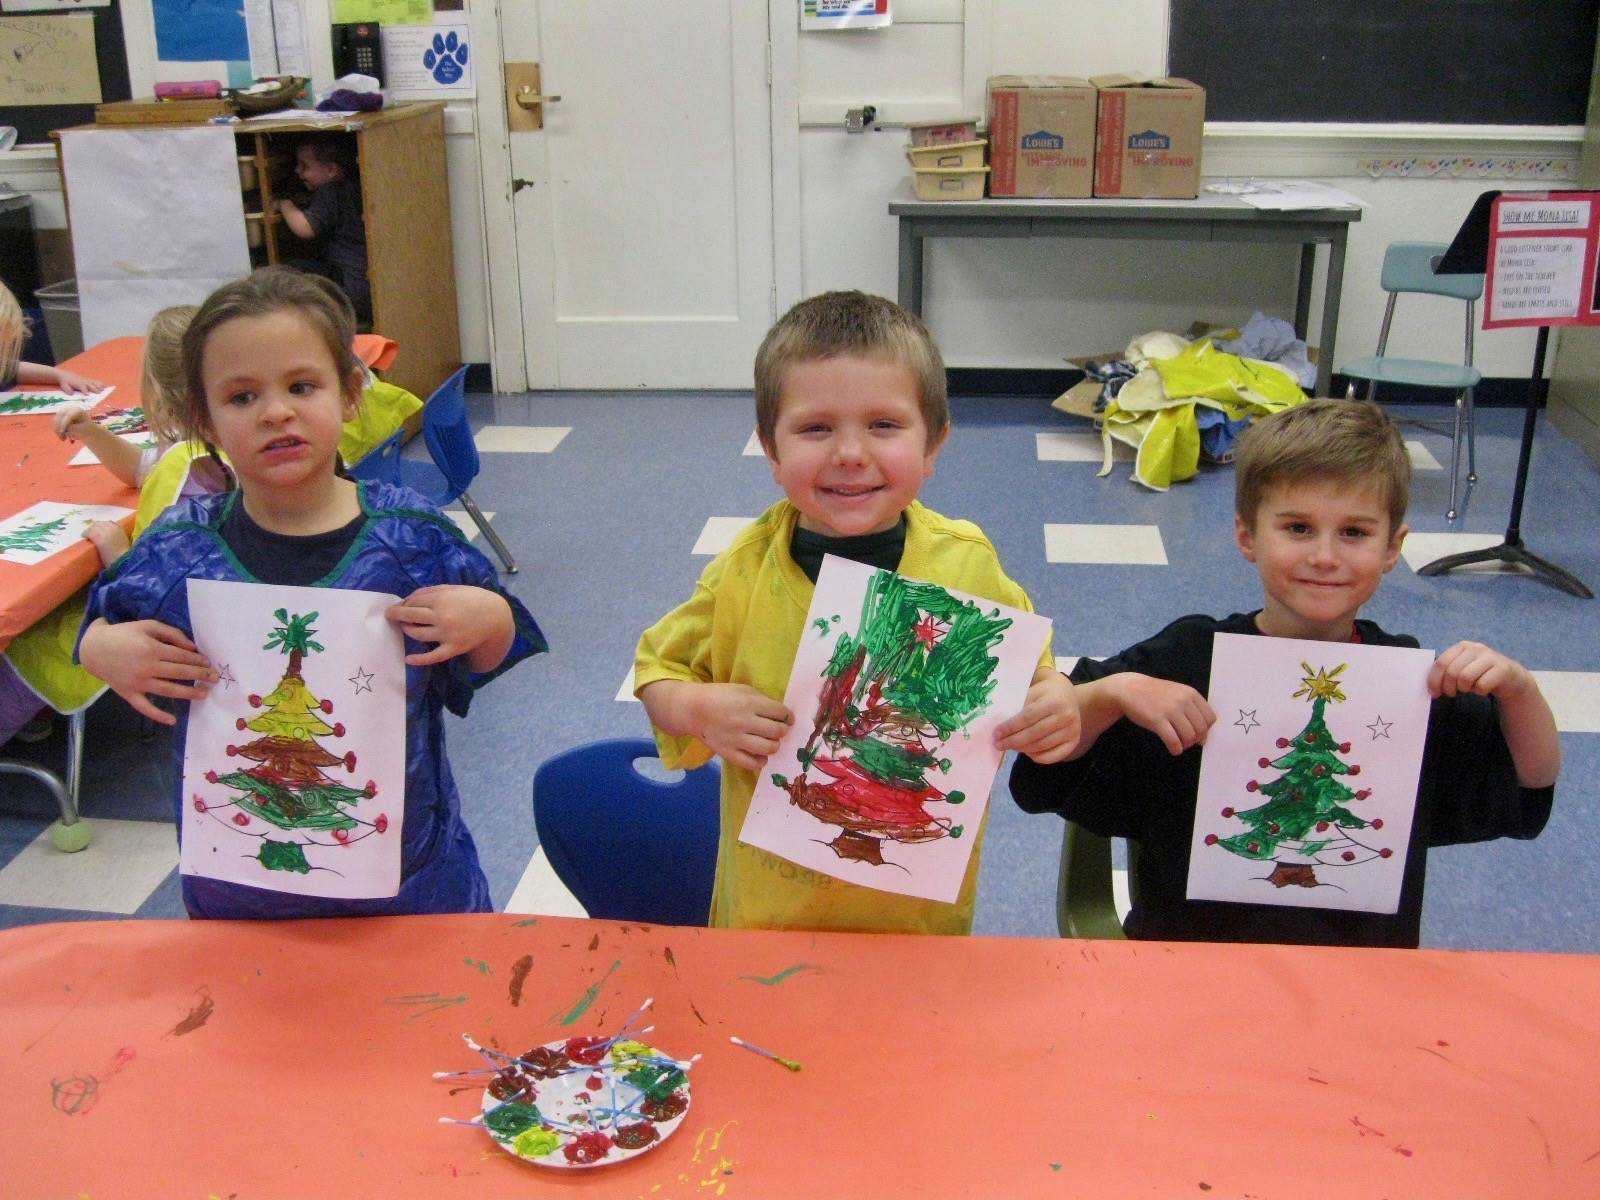 3 students show off their art pieces!